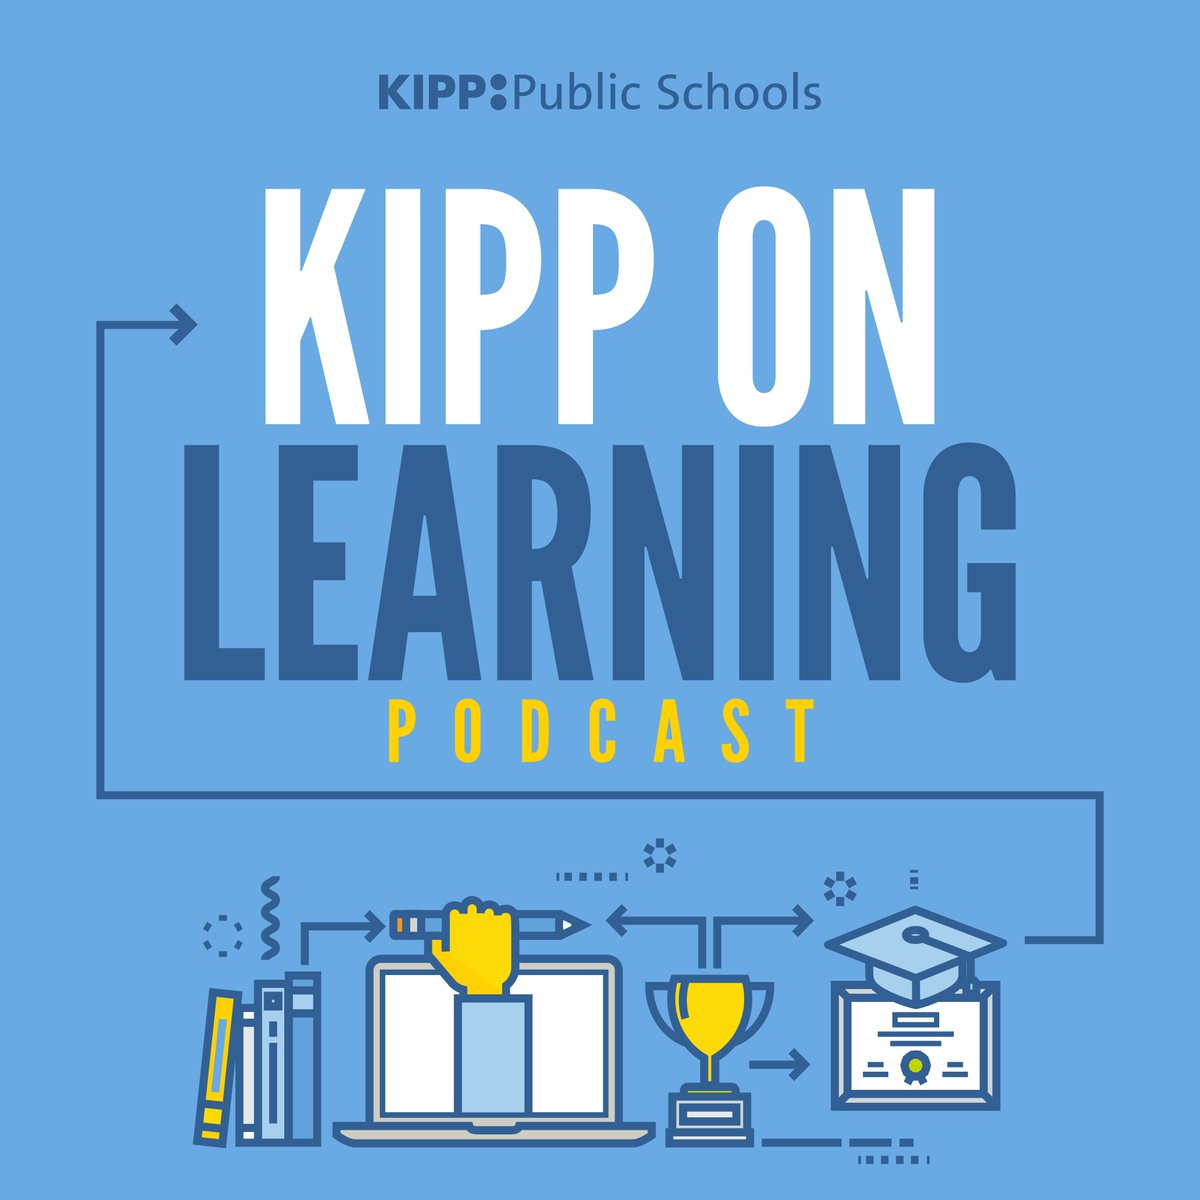 Check out the latest @KIPP On Learning Podcast! Co-founder @Dave_KIPP is joined by leaders in higher ed to discuss the impact of Covid-19 on 2020 graduates and the persistence work that lies ahead. Search: KIPP on Learning Podcast.